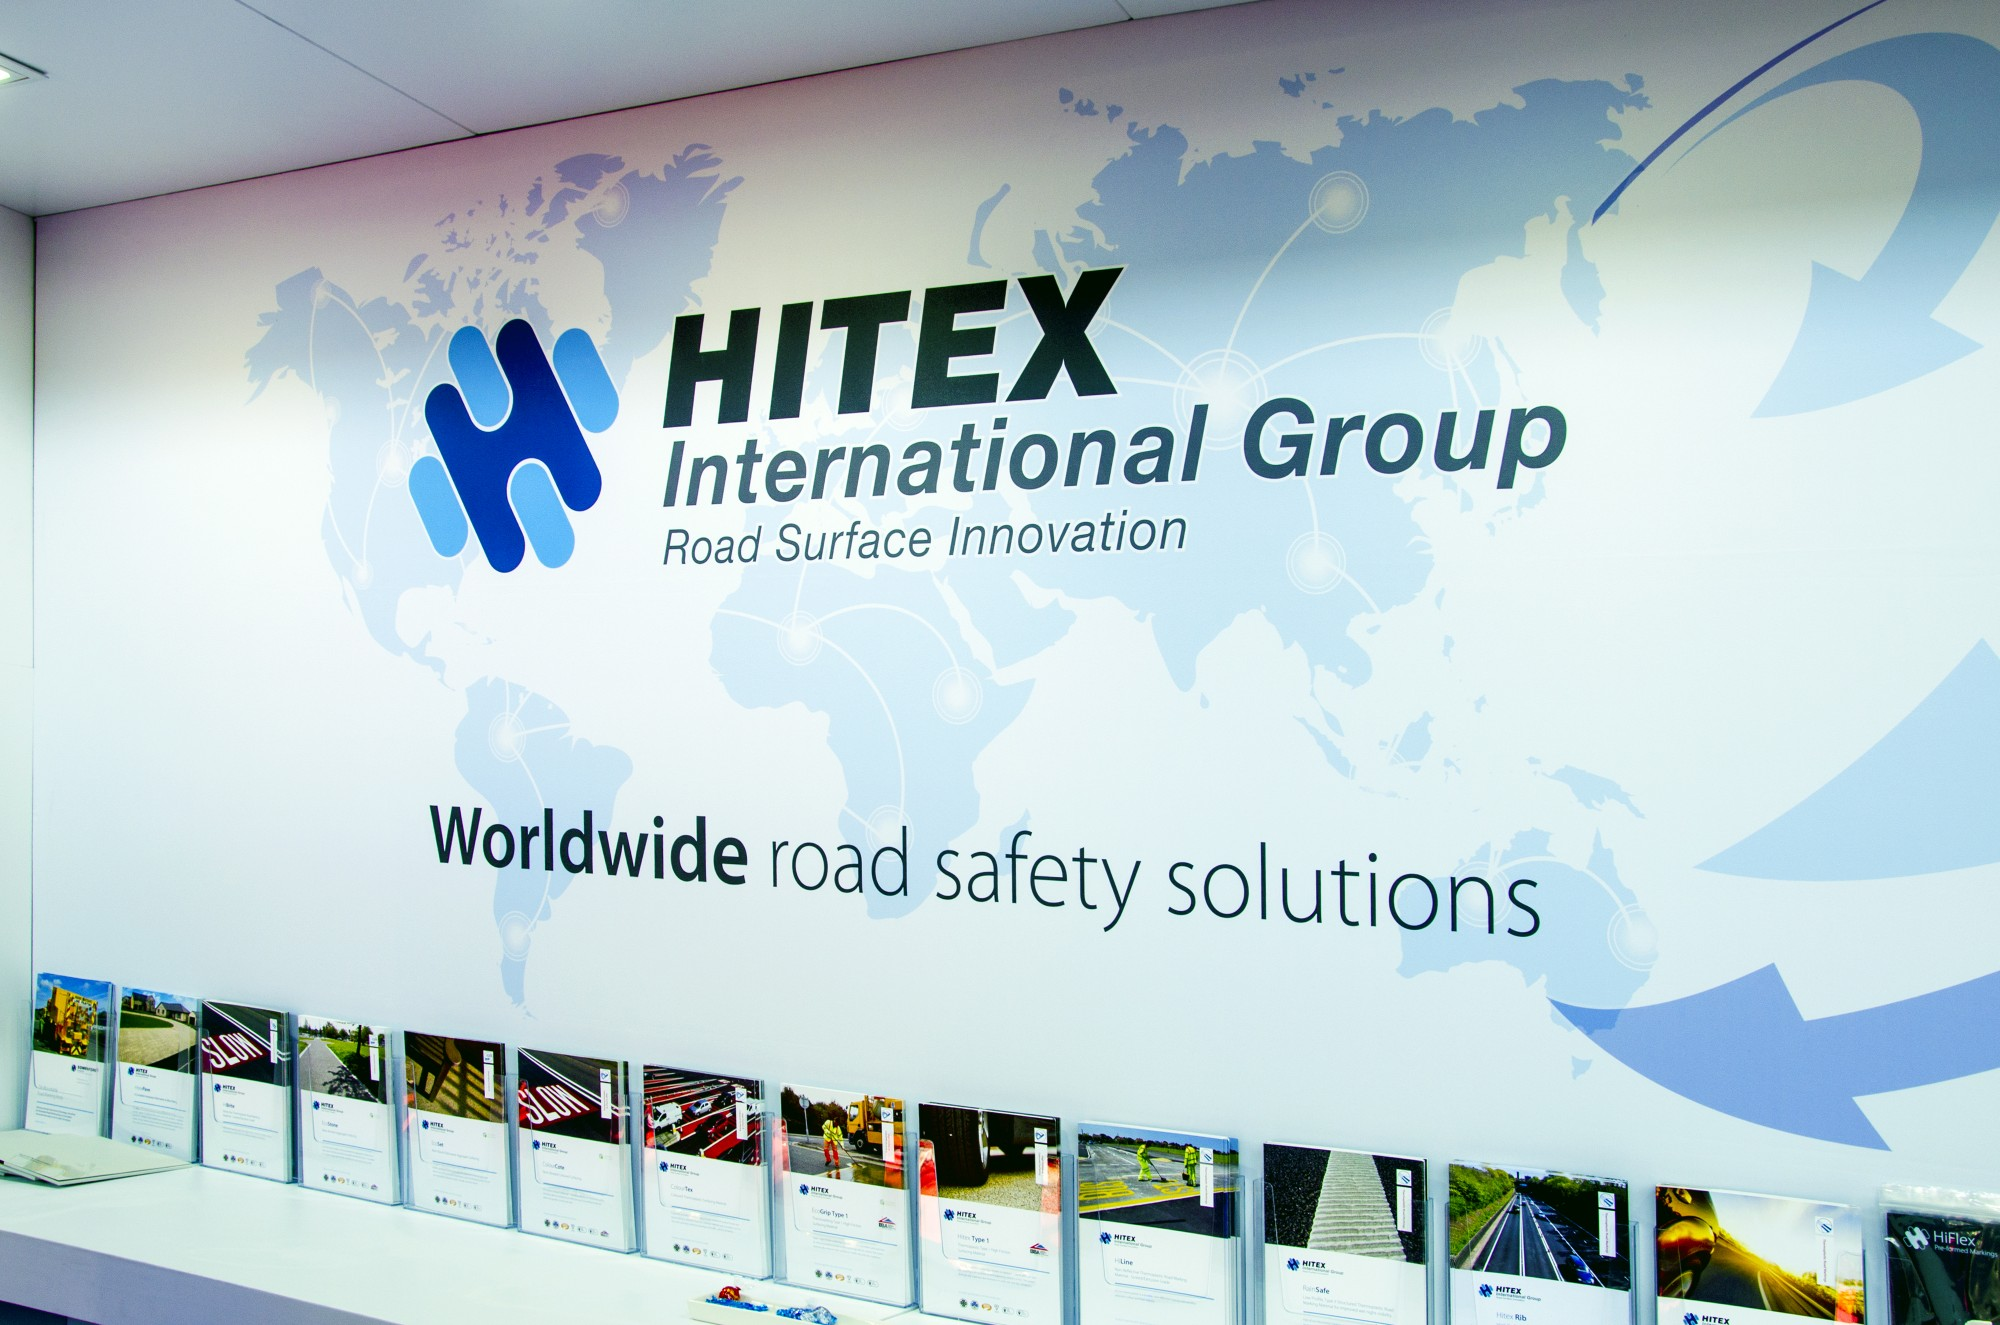 Hitex at Intertraffic 2018 23